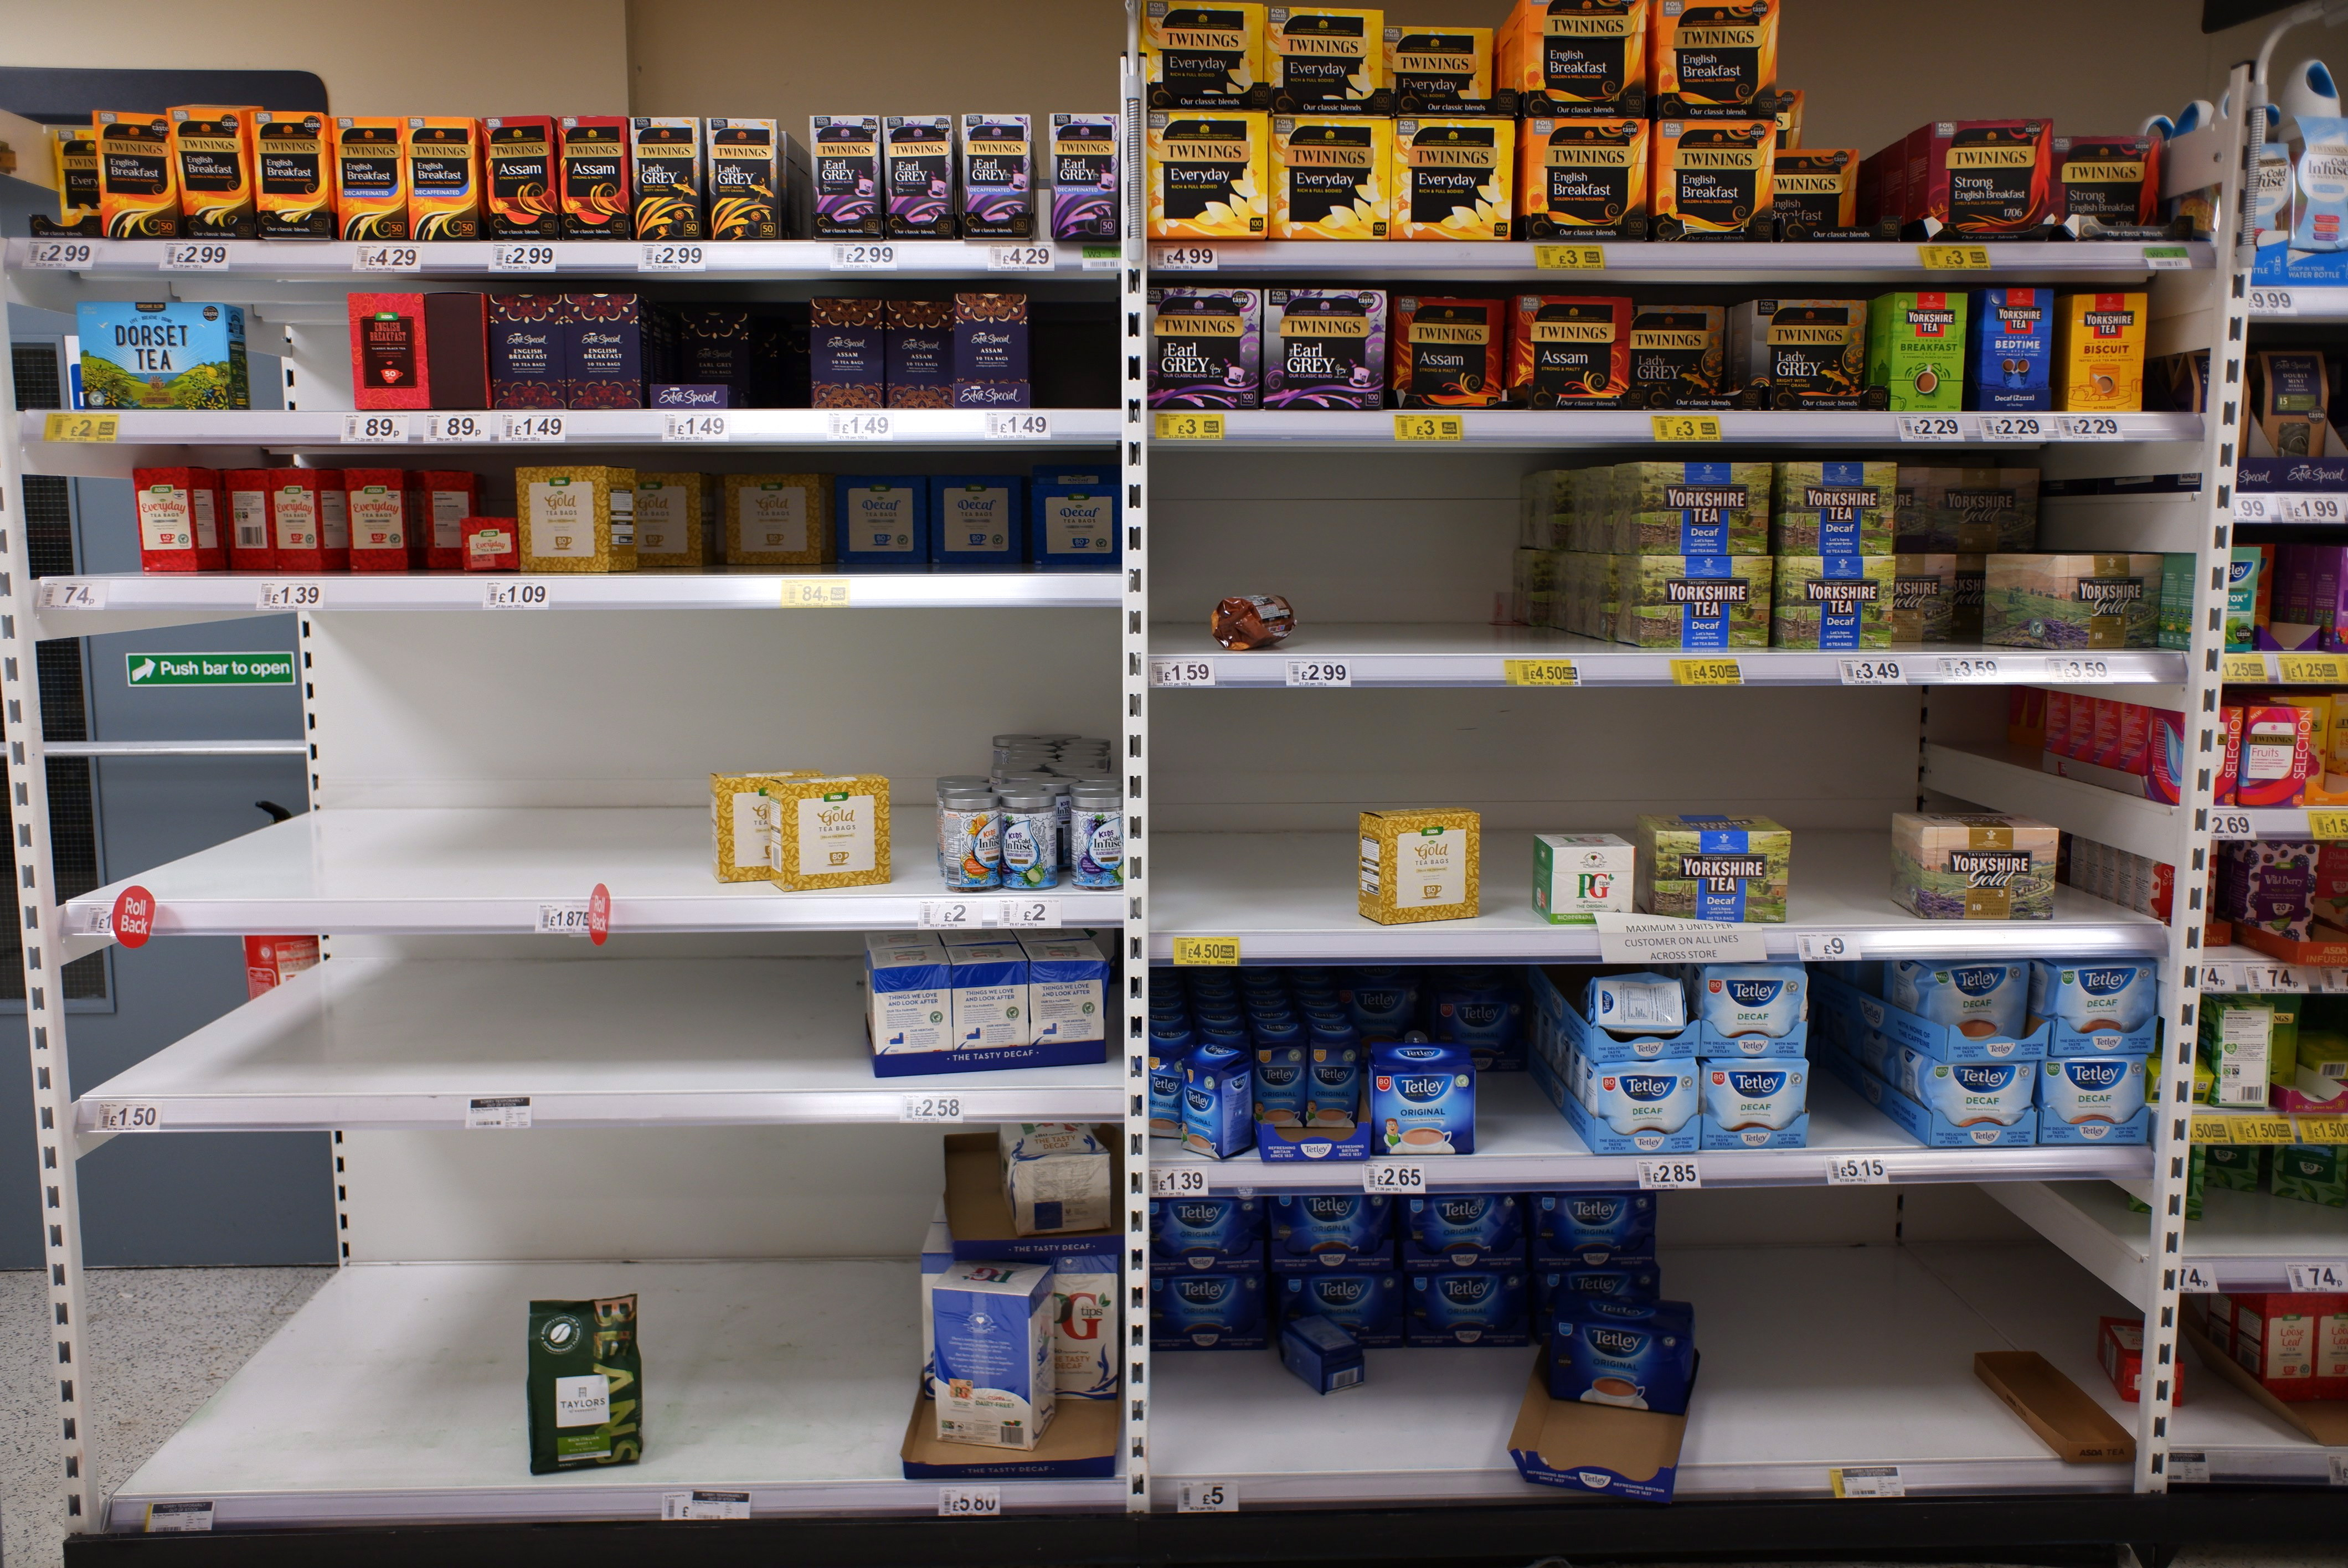 Supermarkets are taking measures to control panic buying